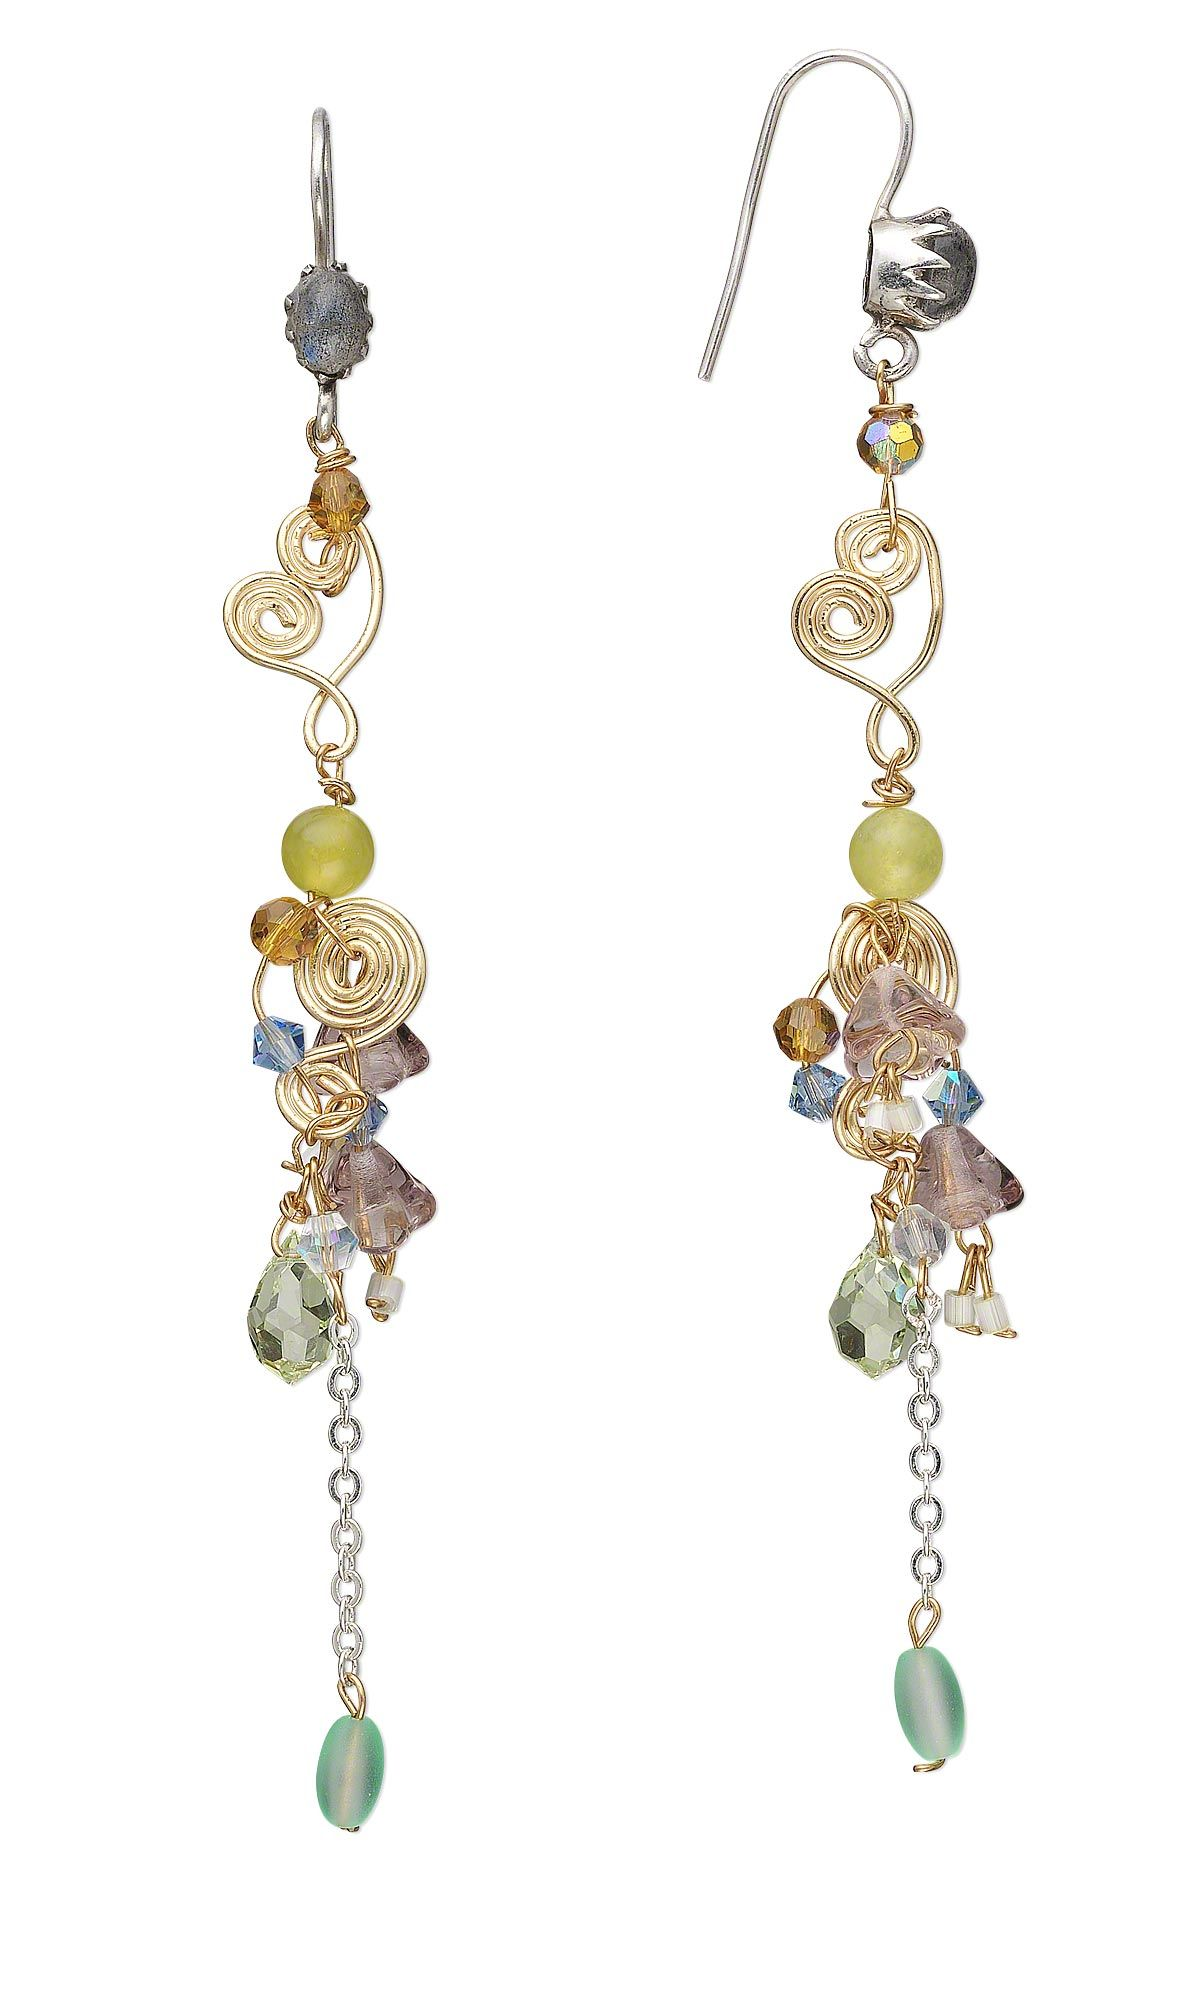 Pin on Earring Designs and Projects